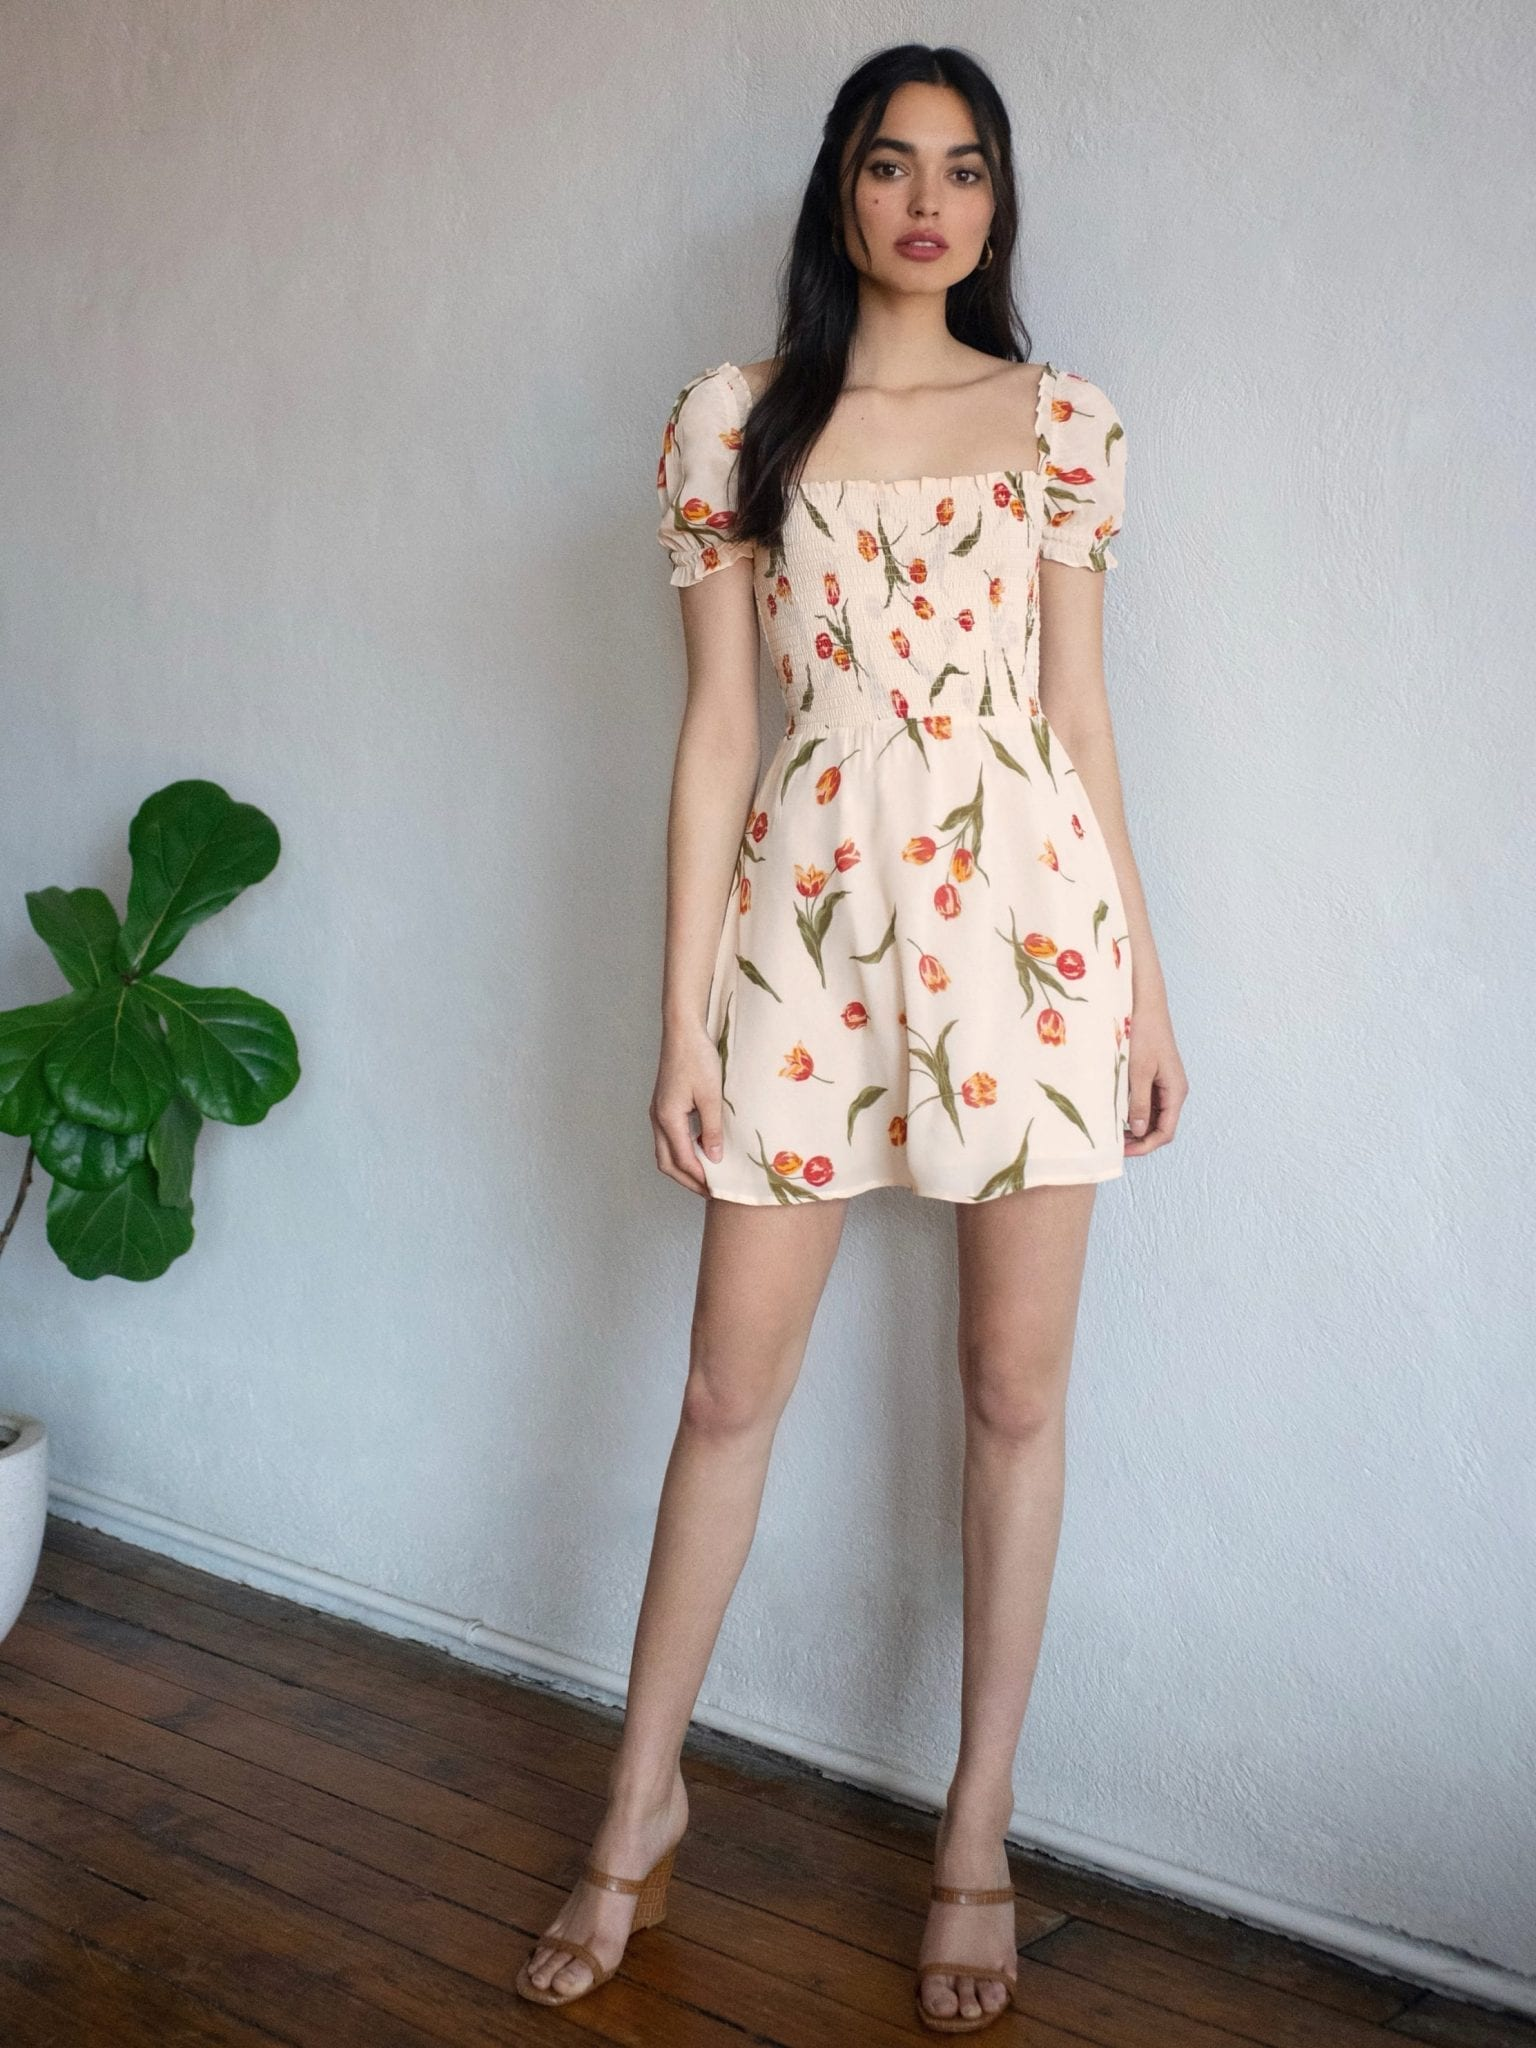 THEREFORMATION Orangerie Dress